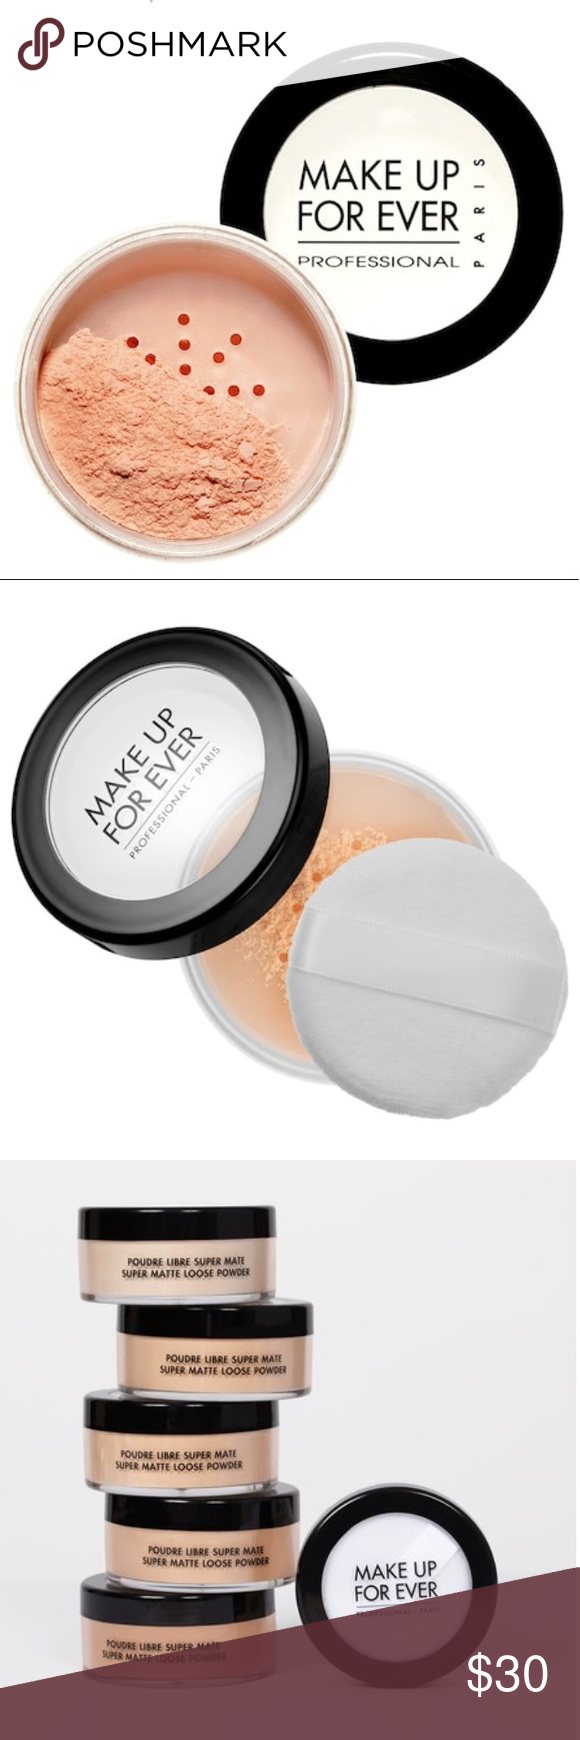 Makeup Forever HD Setting Powder Mini This is an ultra